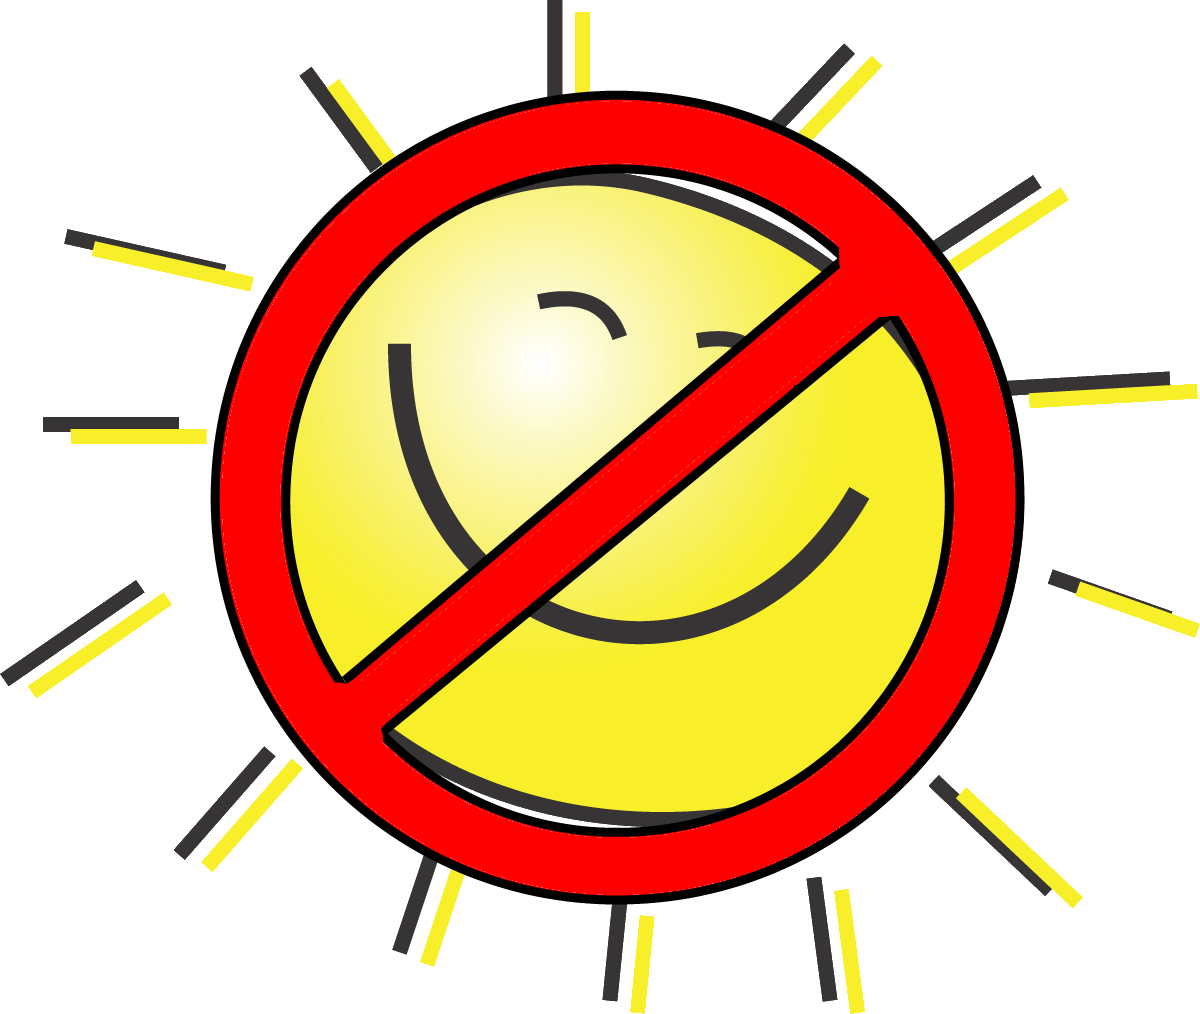 No sign sun clipart banner free download Wrinkles | Humara Health banner free download